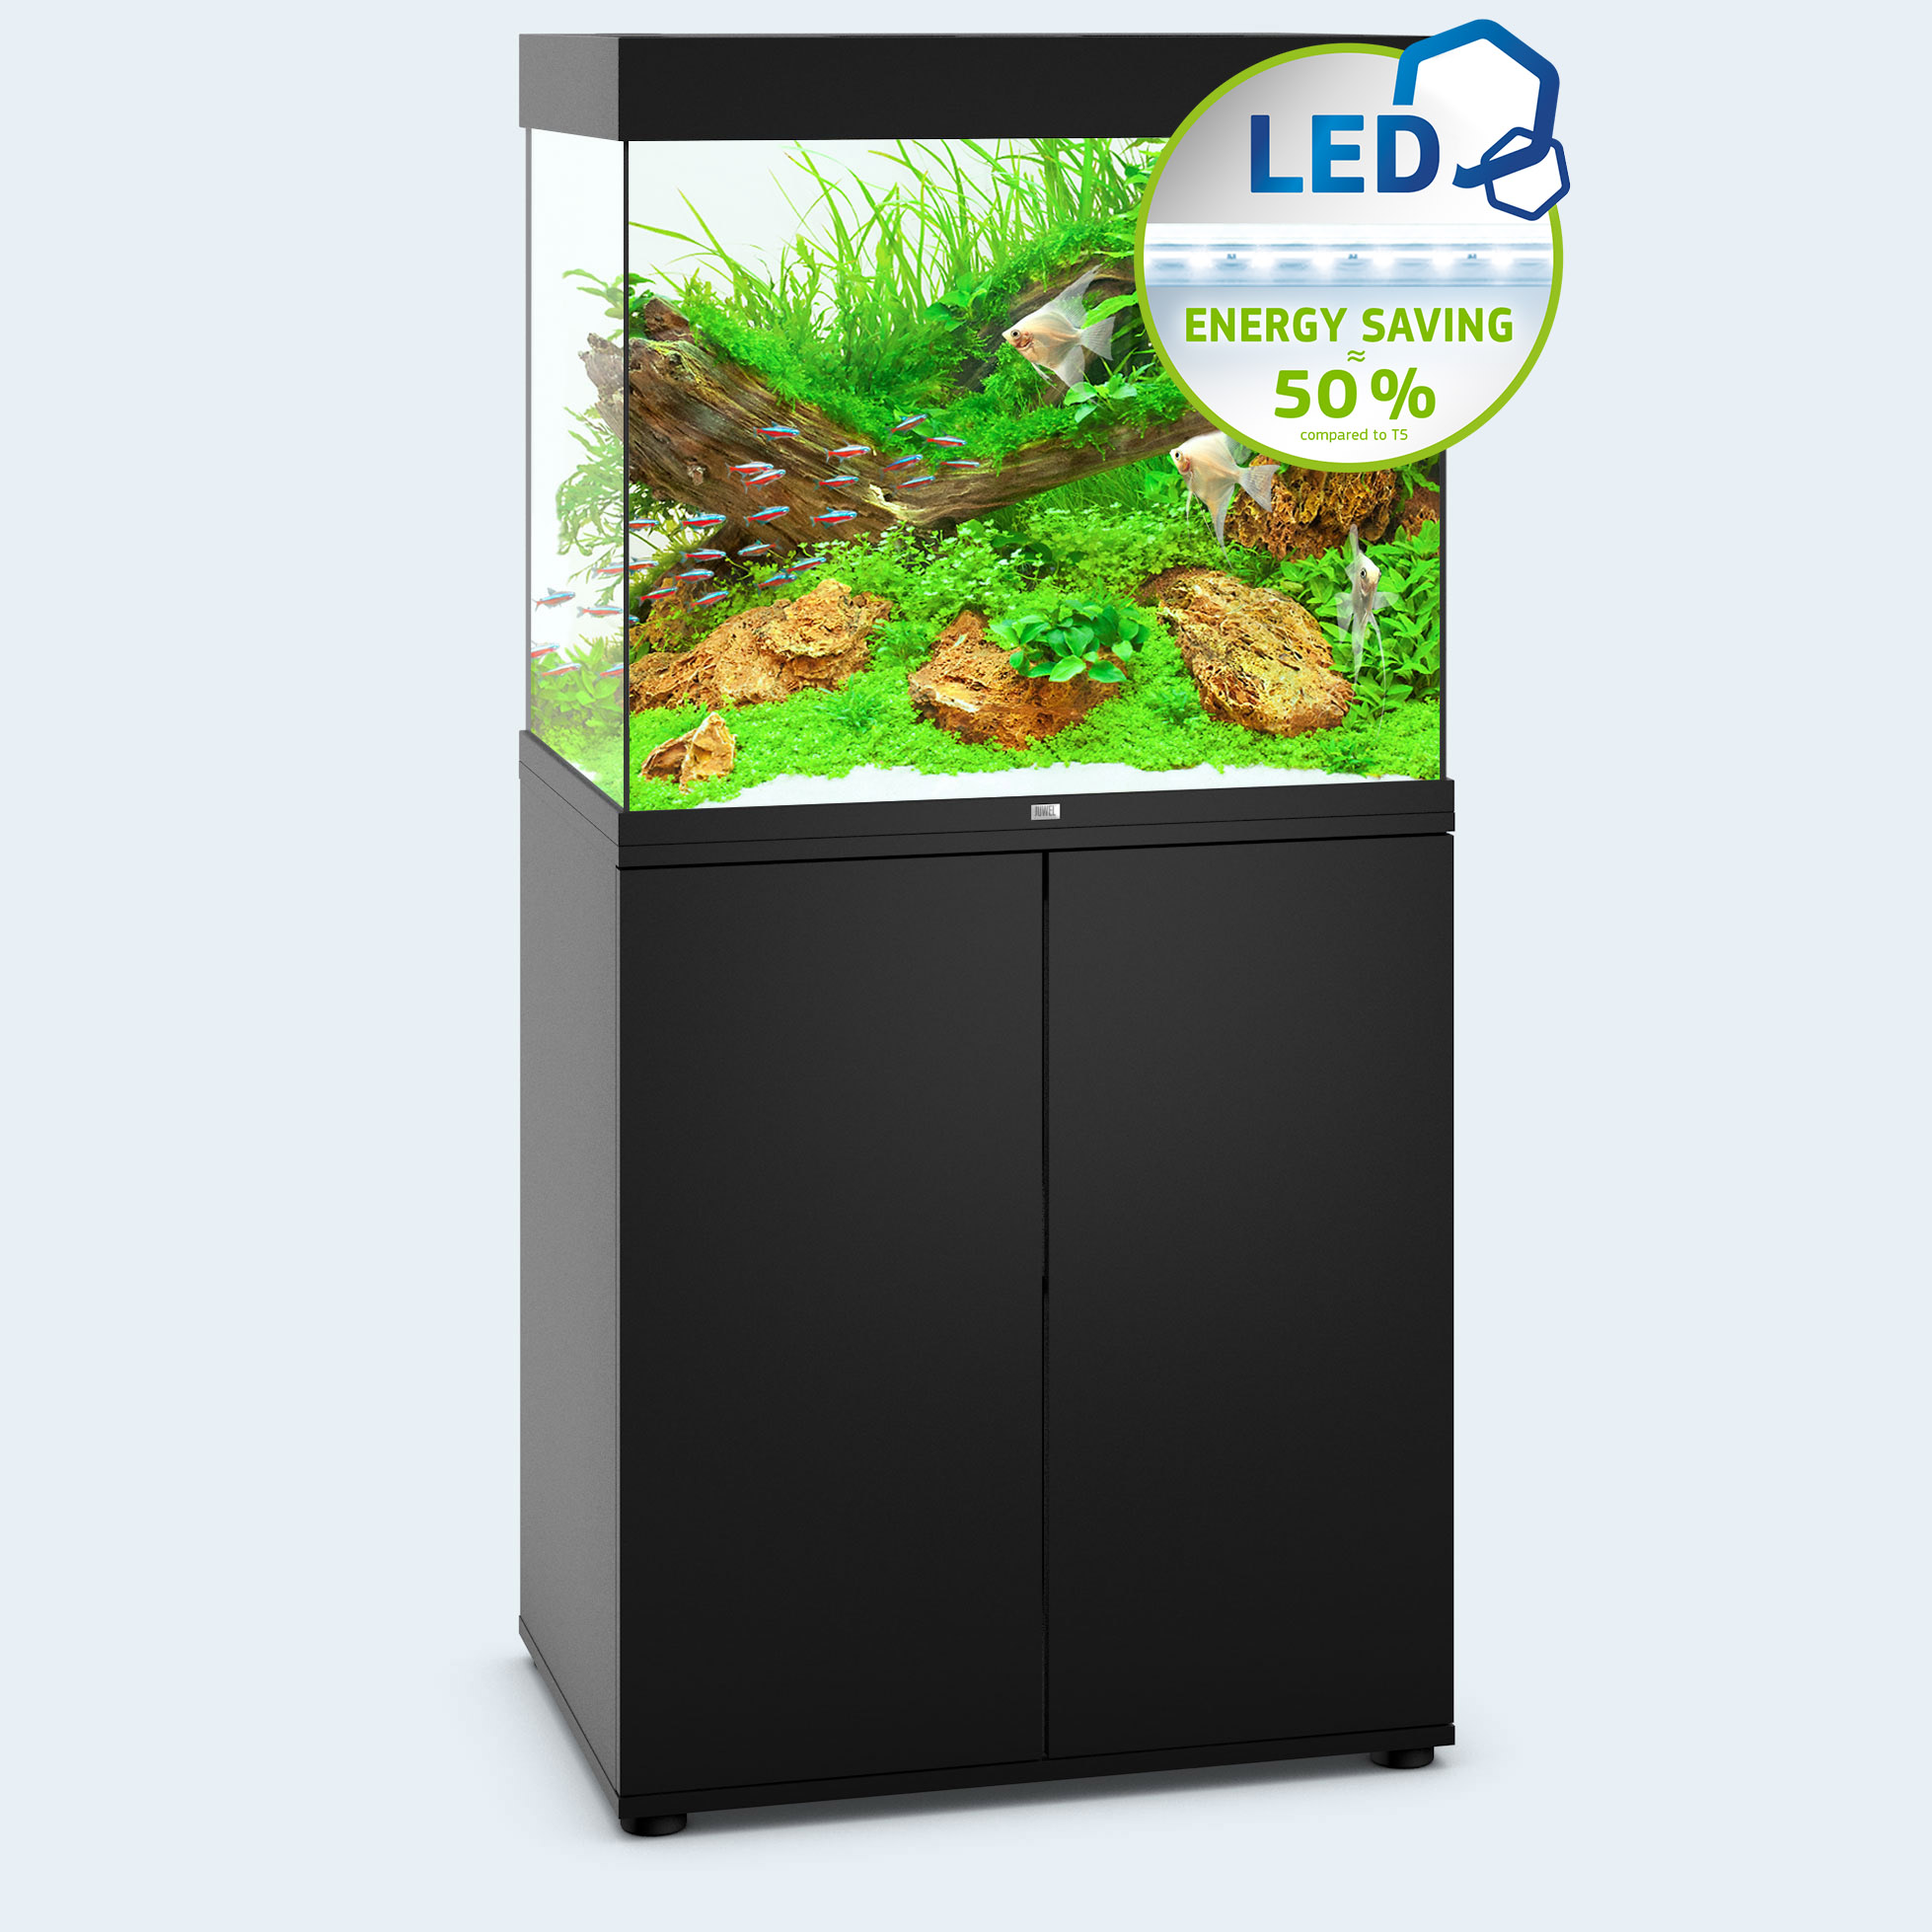 juwel aquarium lido 200 led purchase online. Black Bedroom Furniture Sets. Home Design Ideas